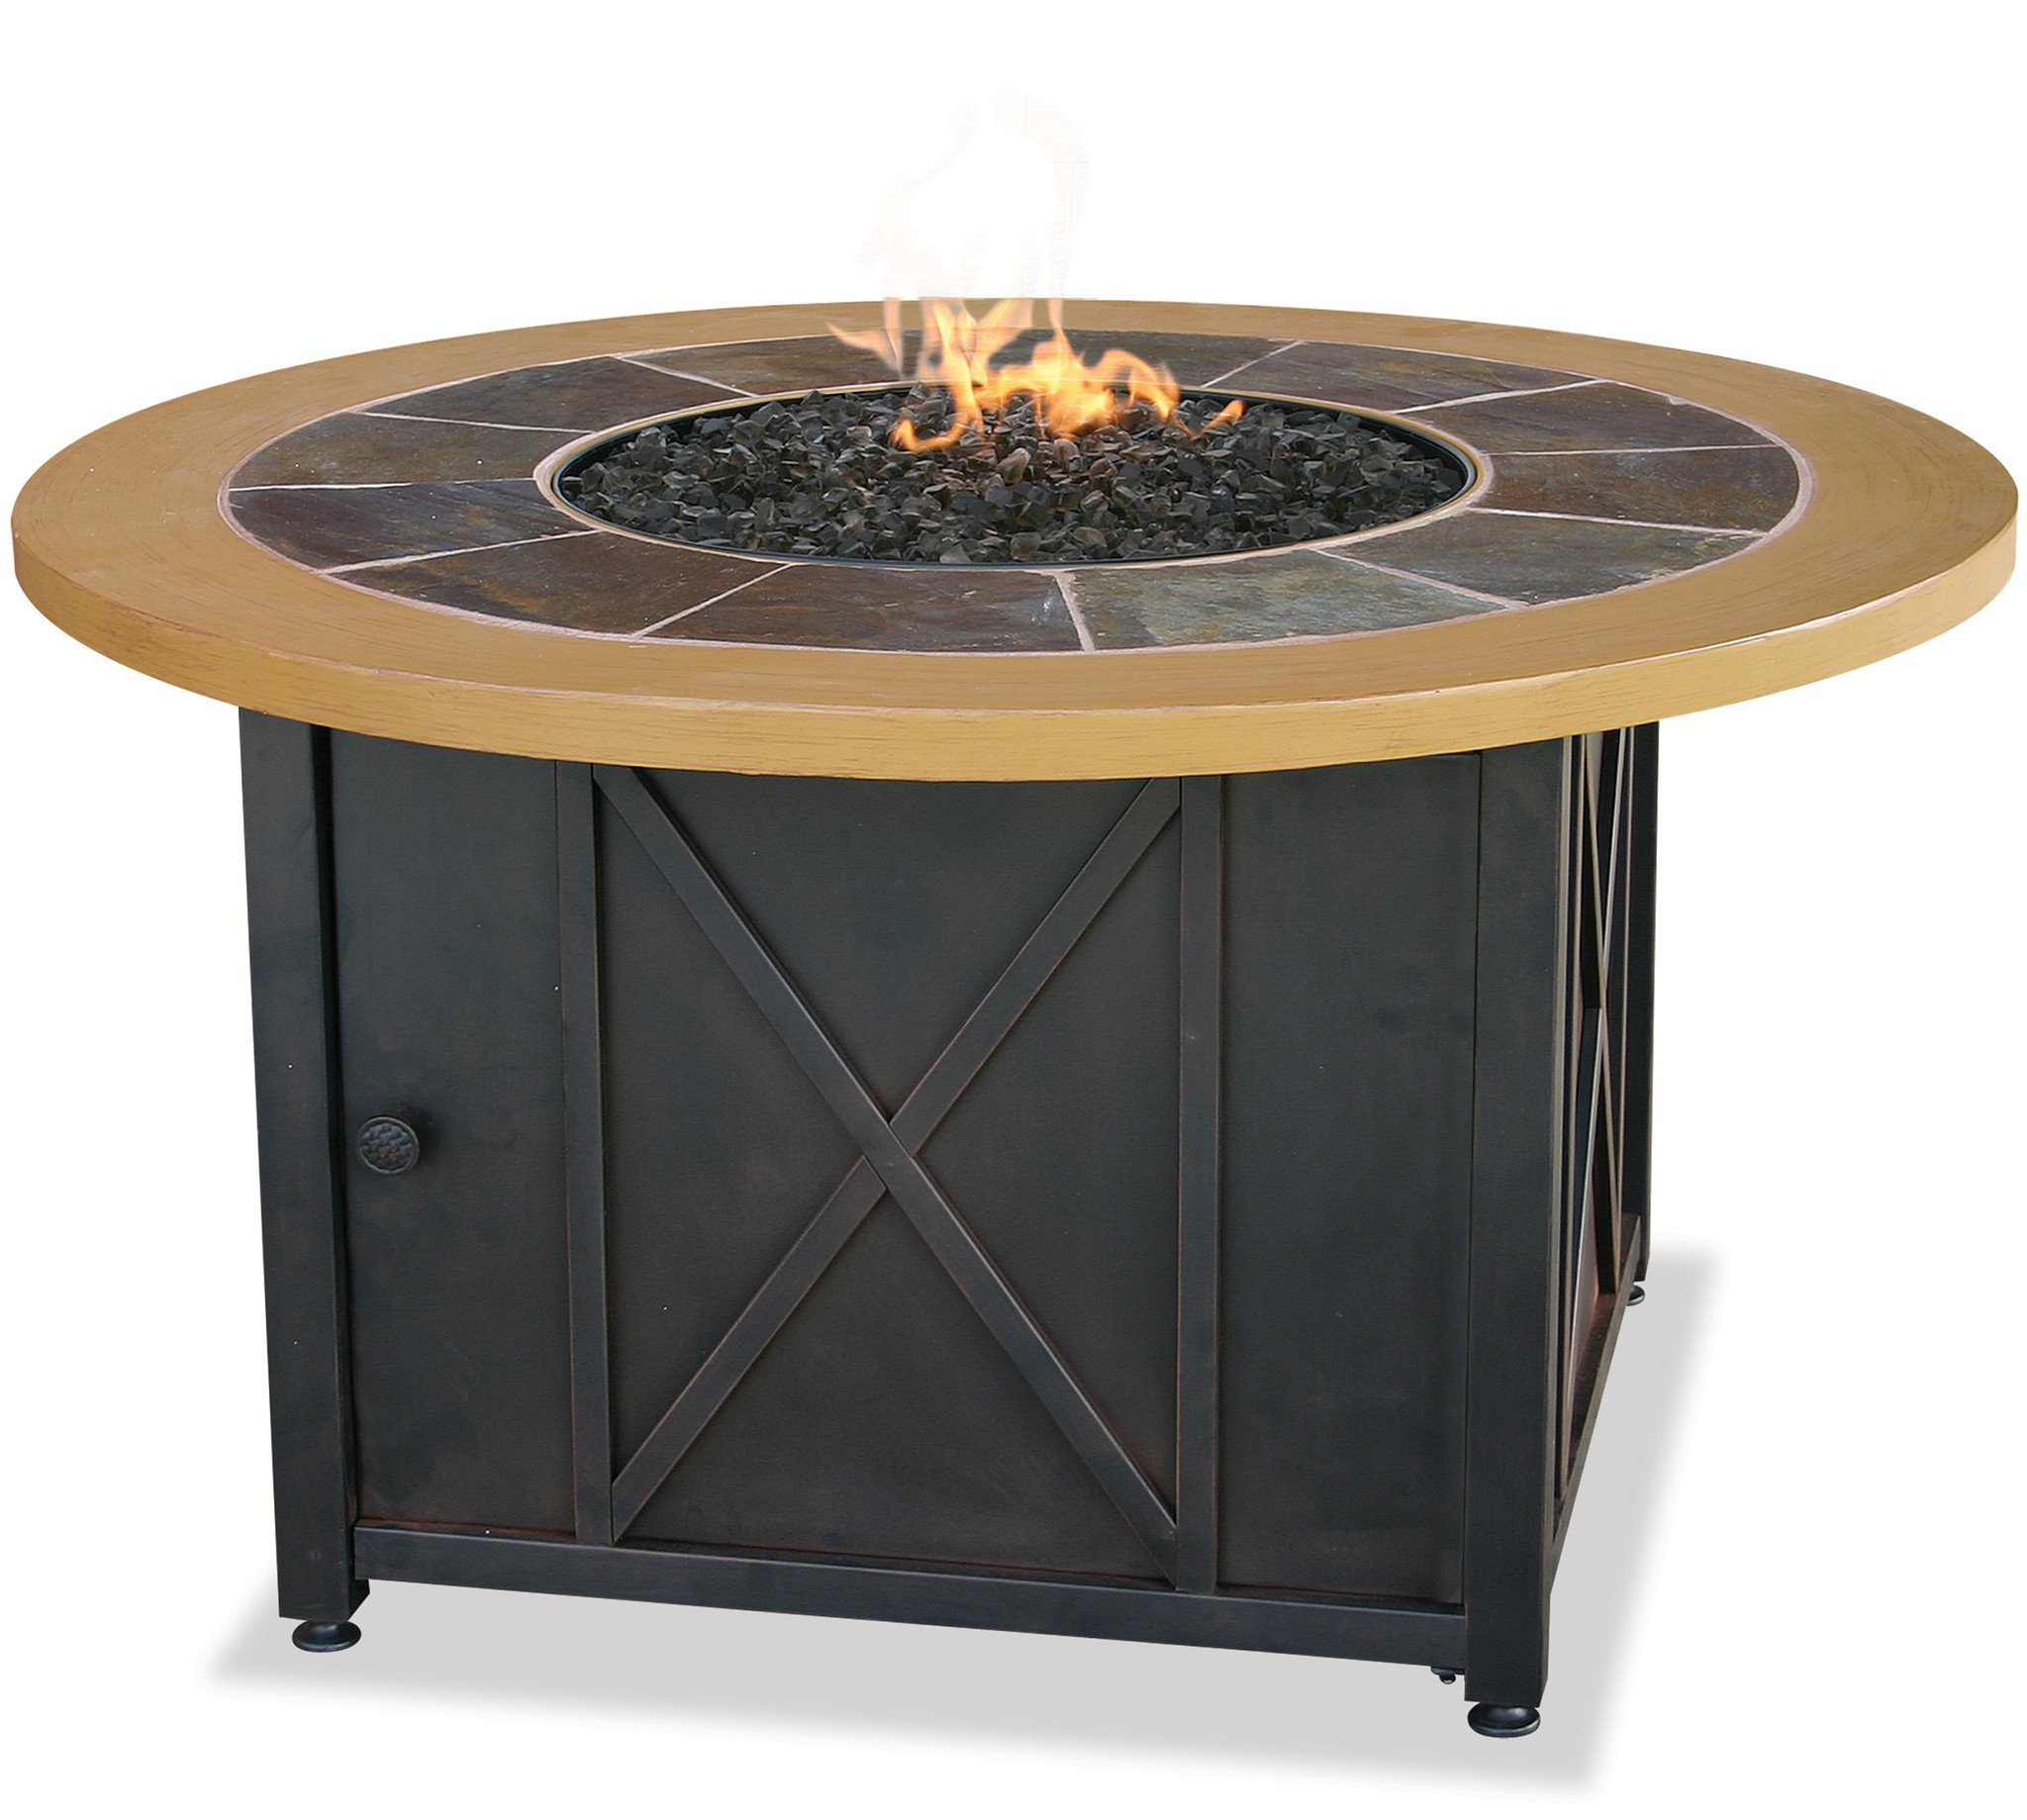 Uniflame LP Gas Outdoor Firebowl with Slate & Faux Wood Mantel by Uniflame